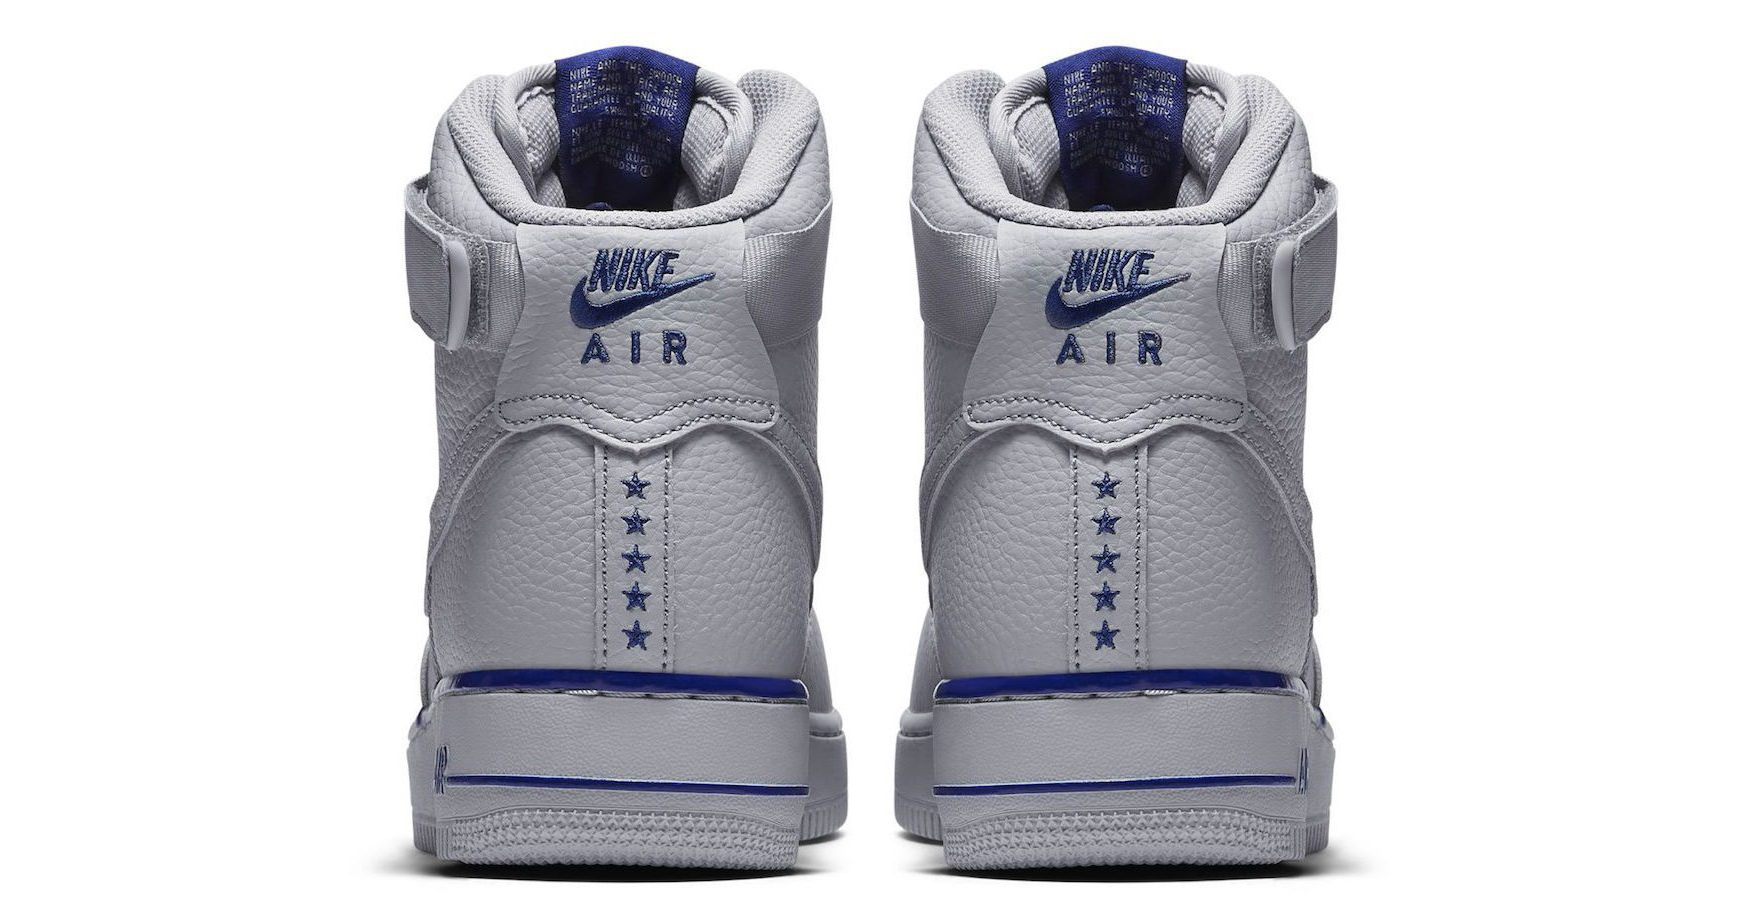 We're seeing stars over these latest Air Force 1 Highs